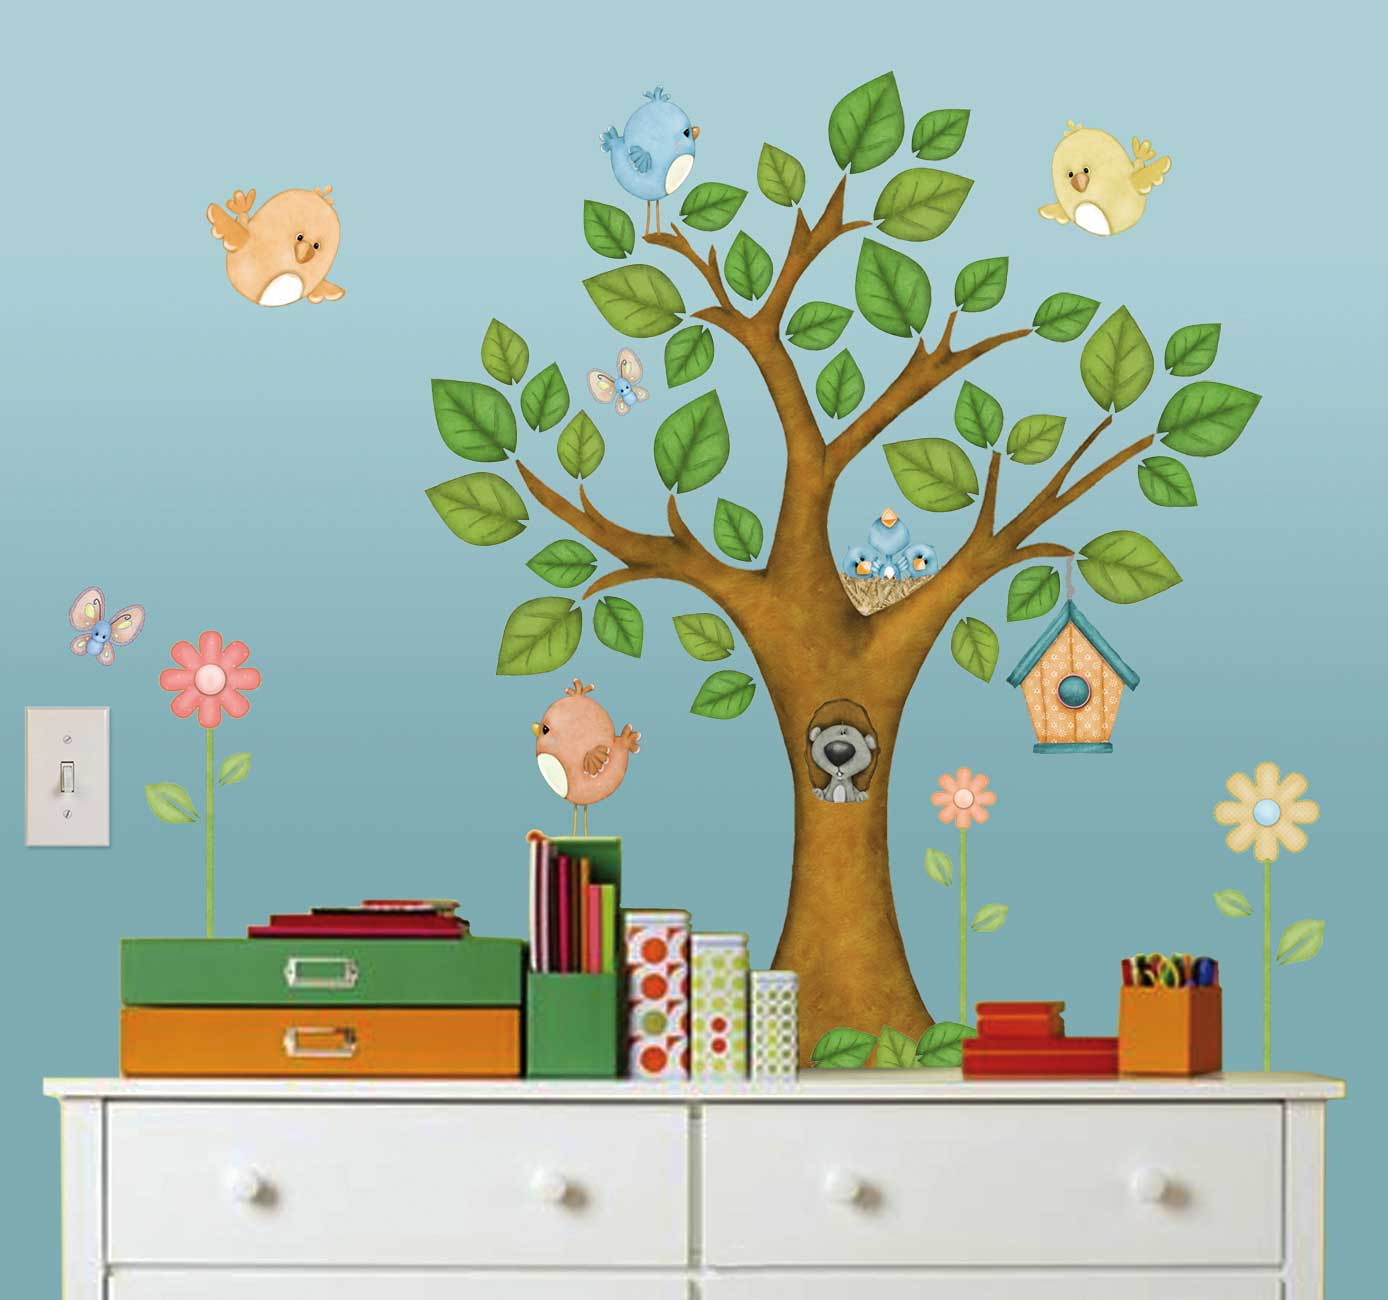 Wandtattoo Kinderzimmer Baum Borders Unlimited Room Fx Wandsticker Baum Ecken Kanten